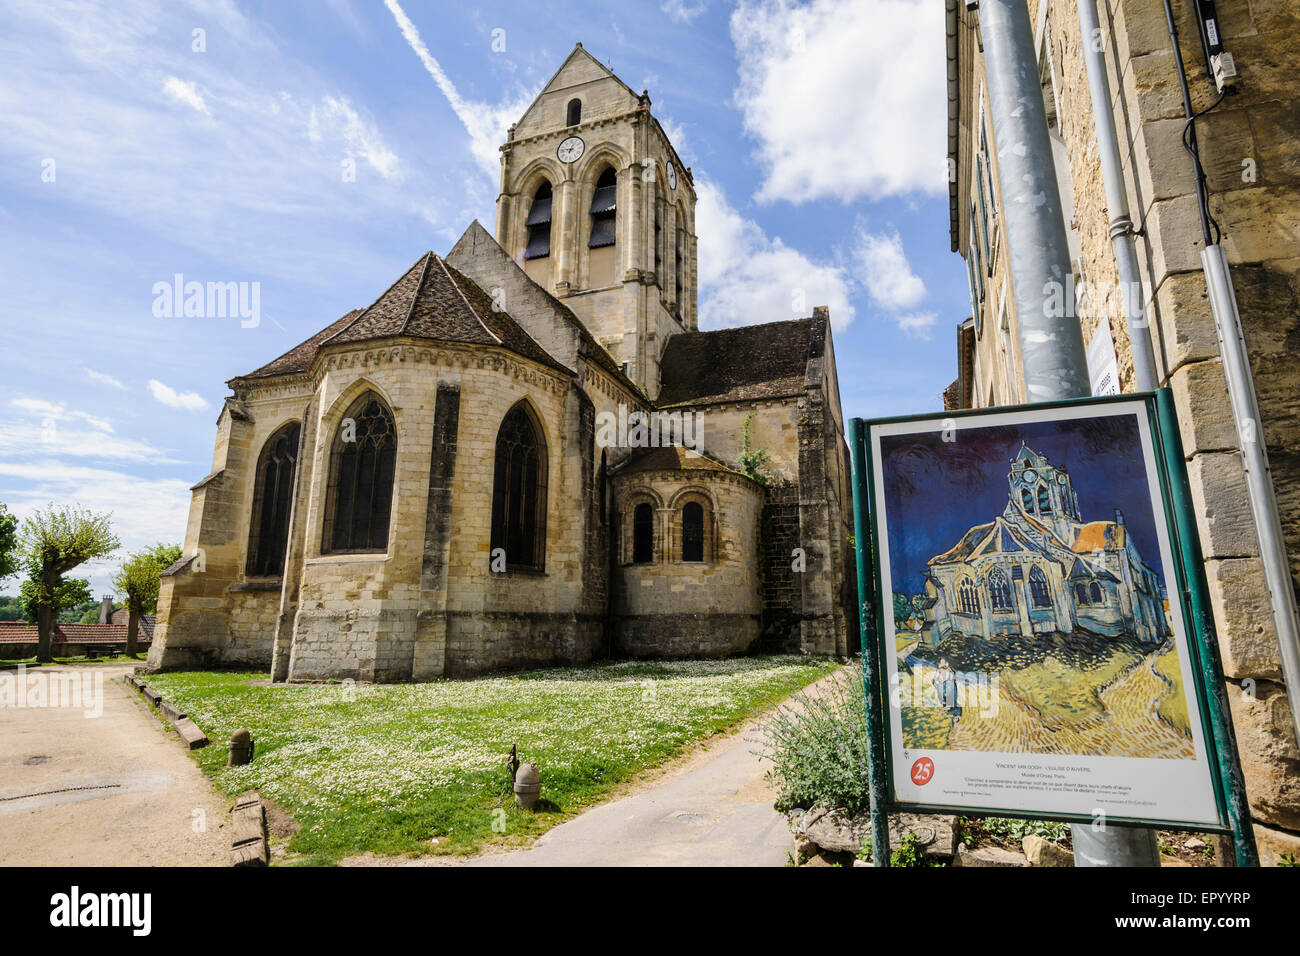 the church of auvers sur oise auvers sur oise the village where stock photo 82978442 alamy. Black Bedroom Furniture Sets. Home Design Ideas